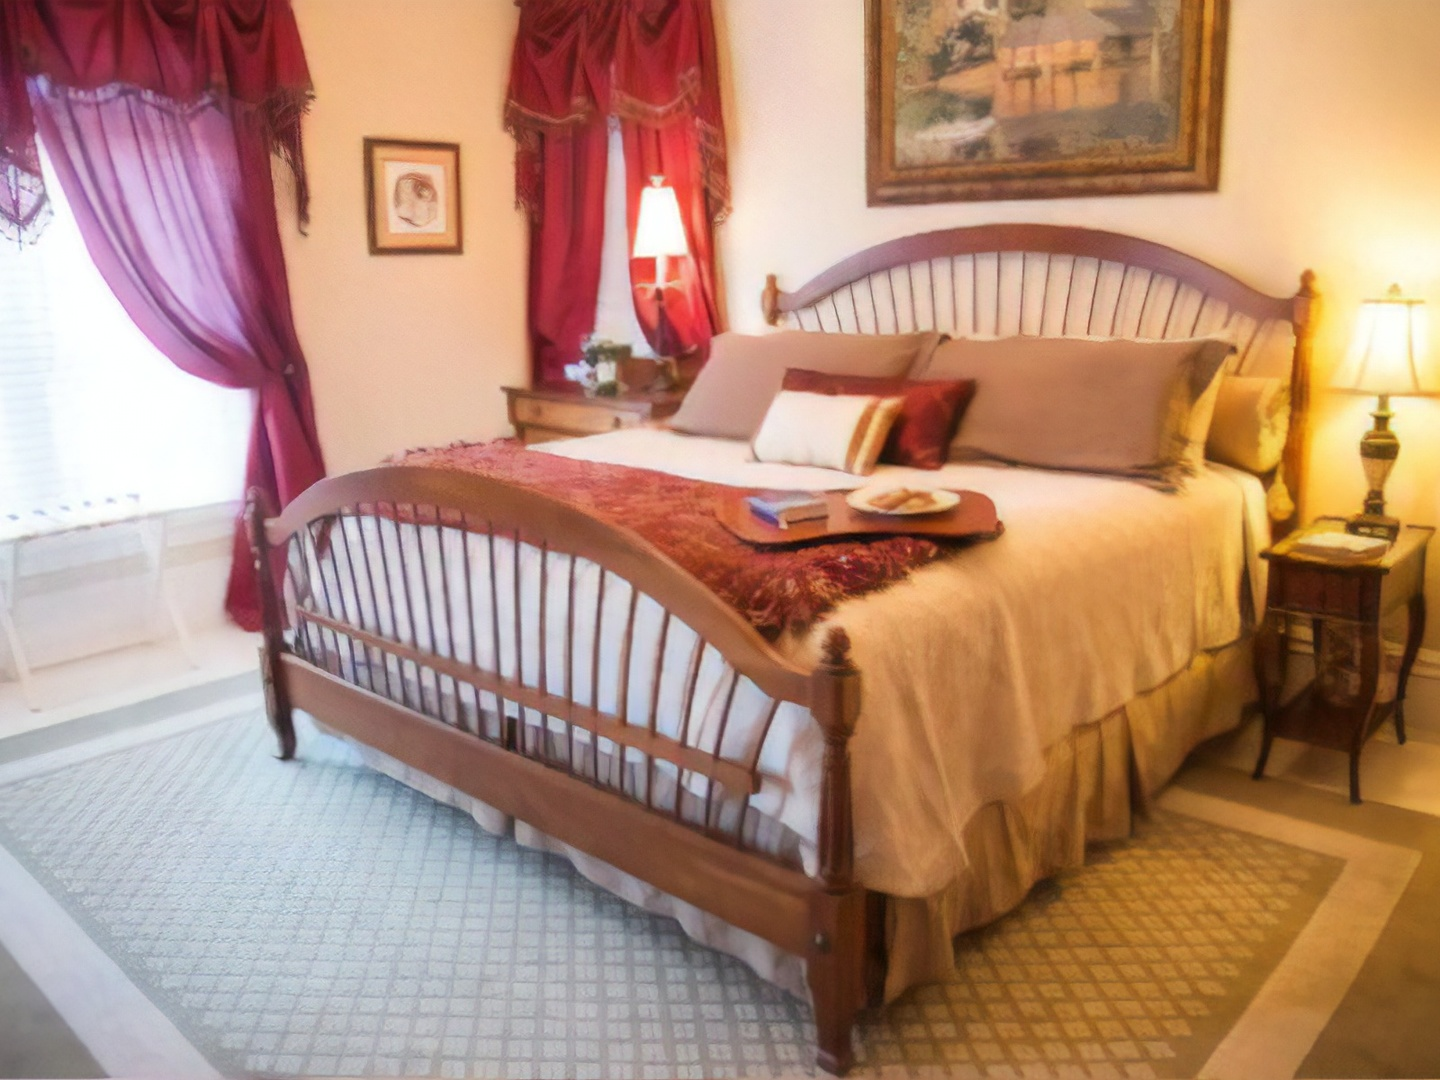 A bedroom with a bed and a chair in a room at Blessings on State Bed & Breakfast.